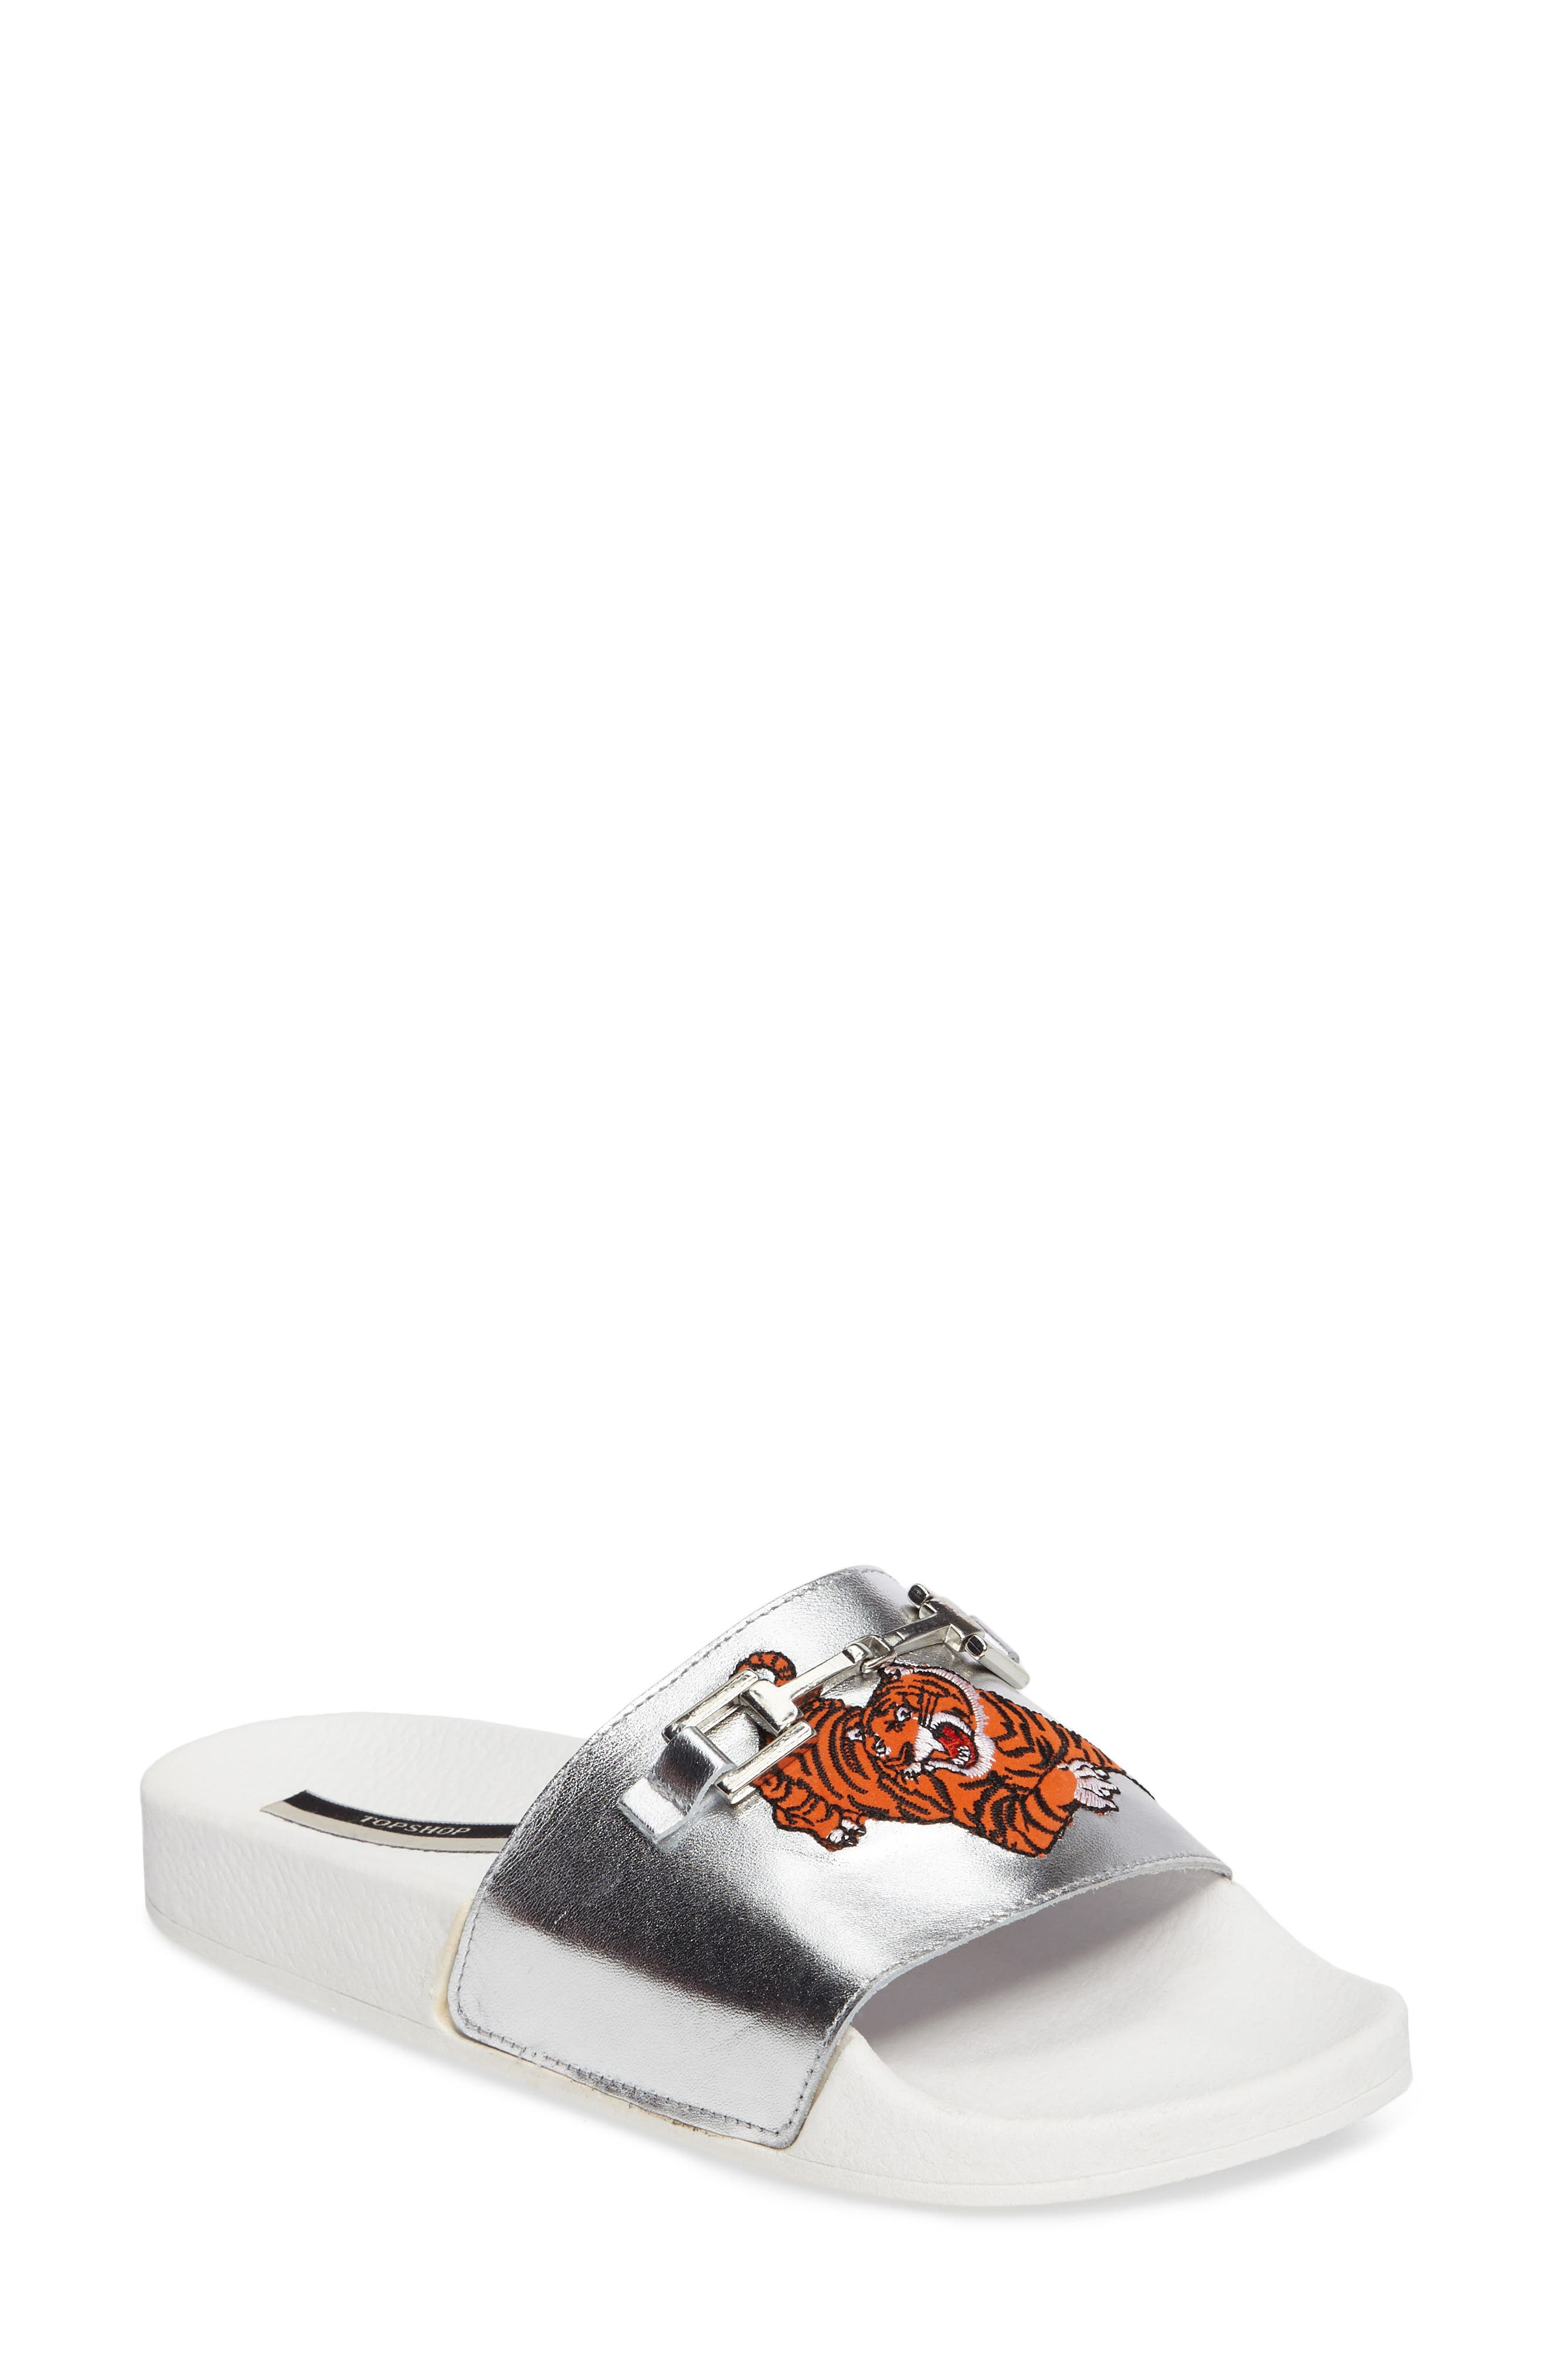 Fierce Embroidered Slide Sandal,                         Main,                         color, 040